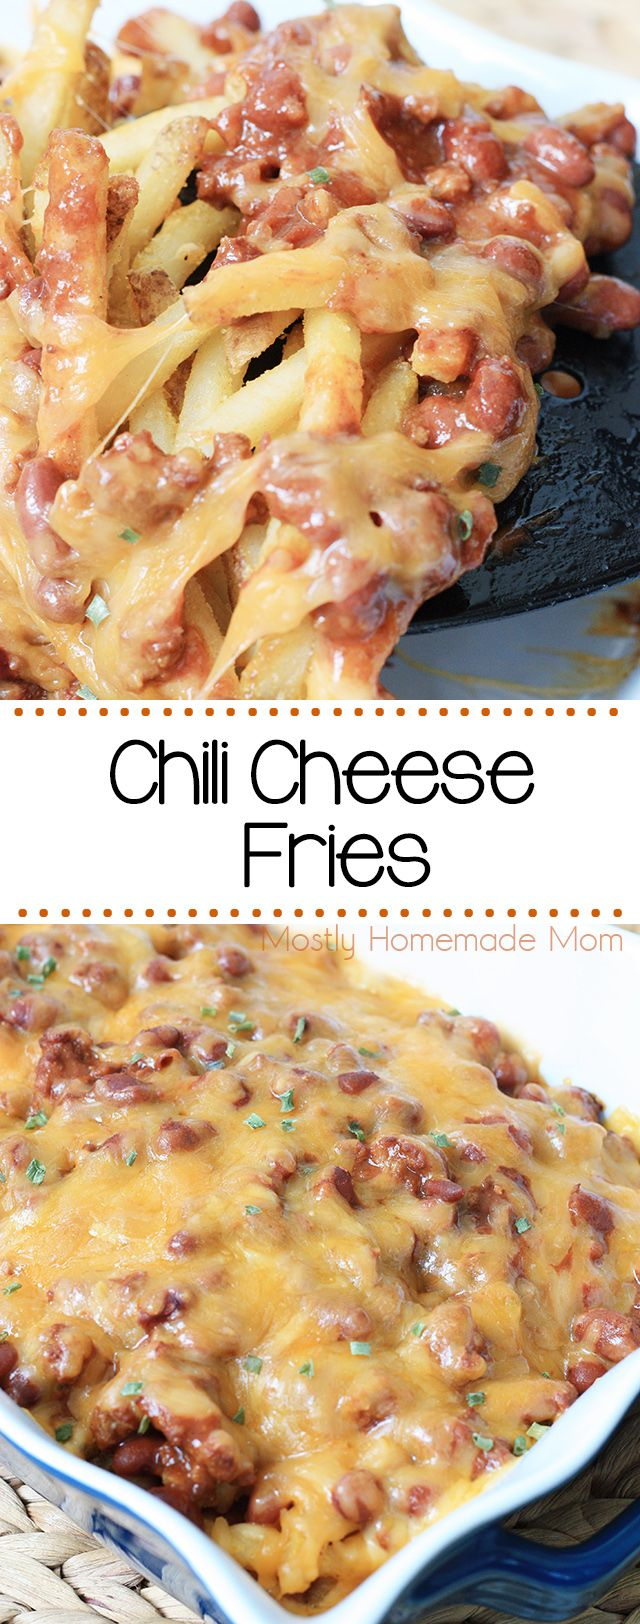 Chili Cheese Fries images